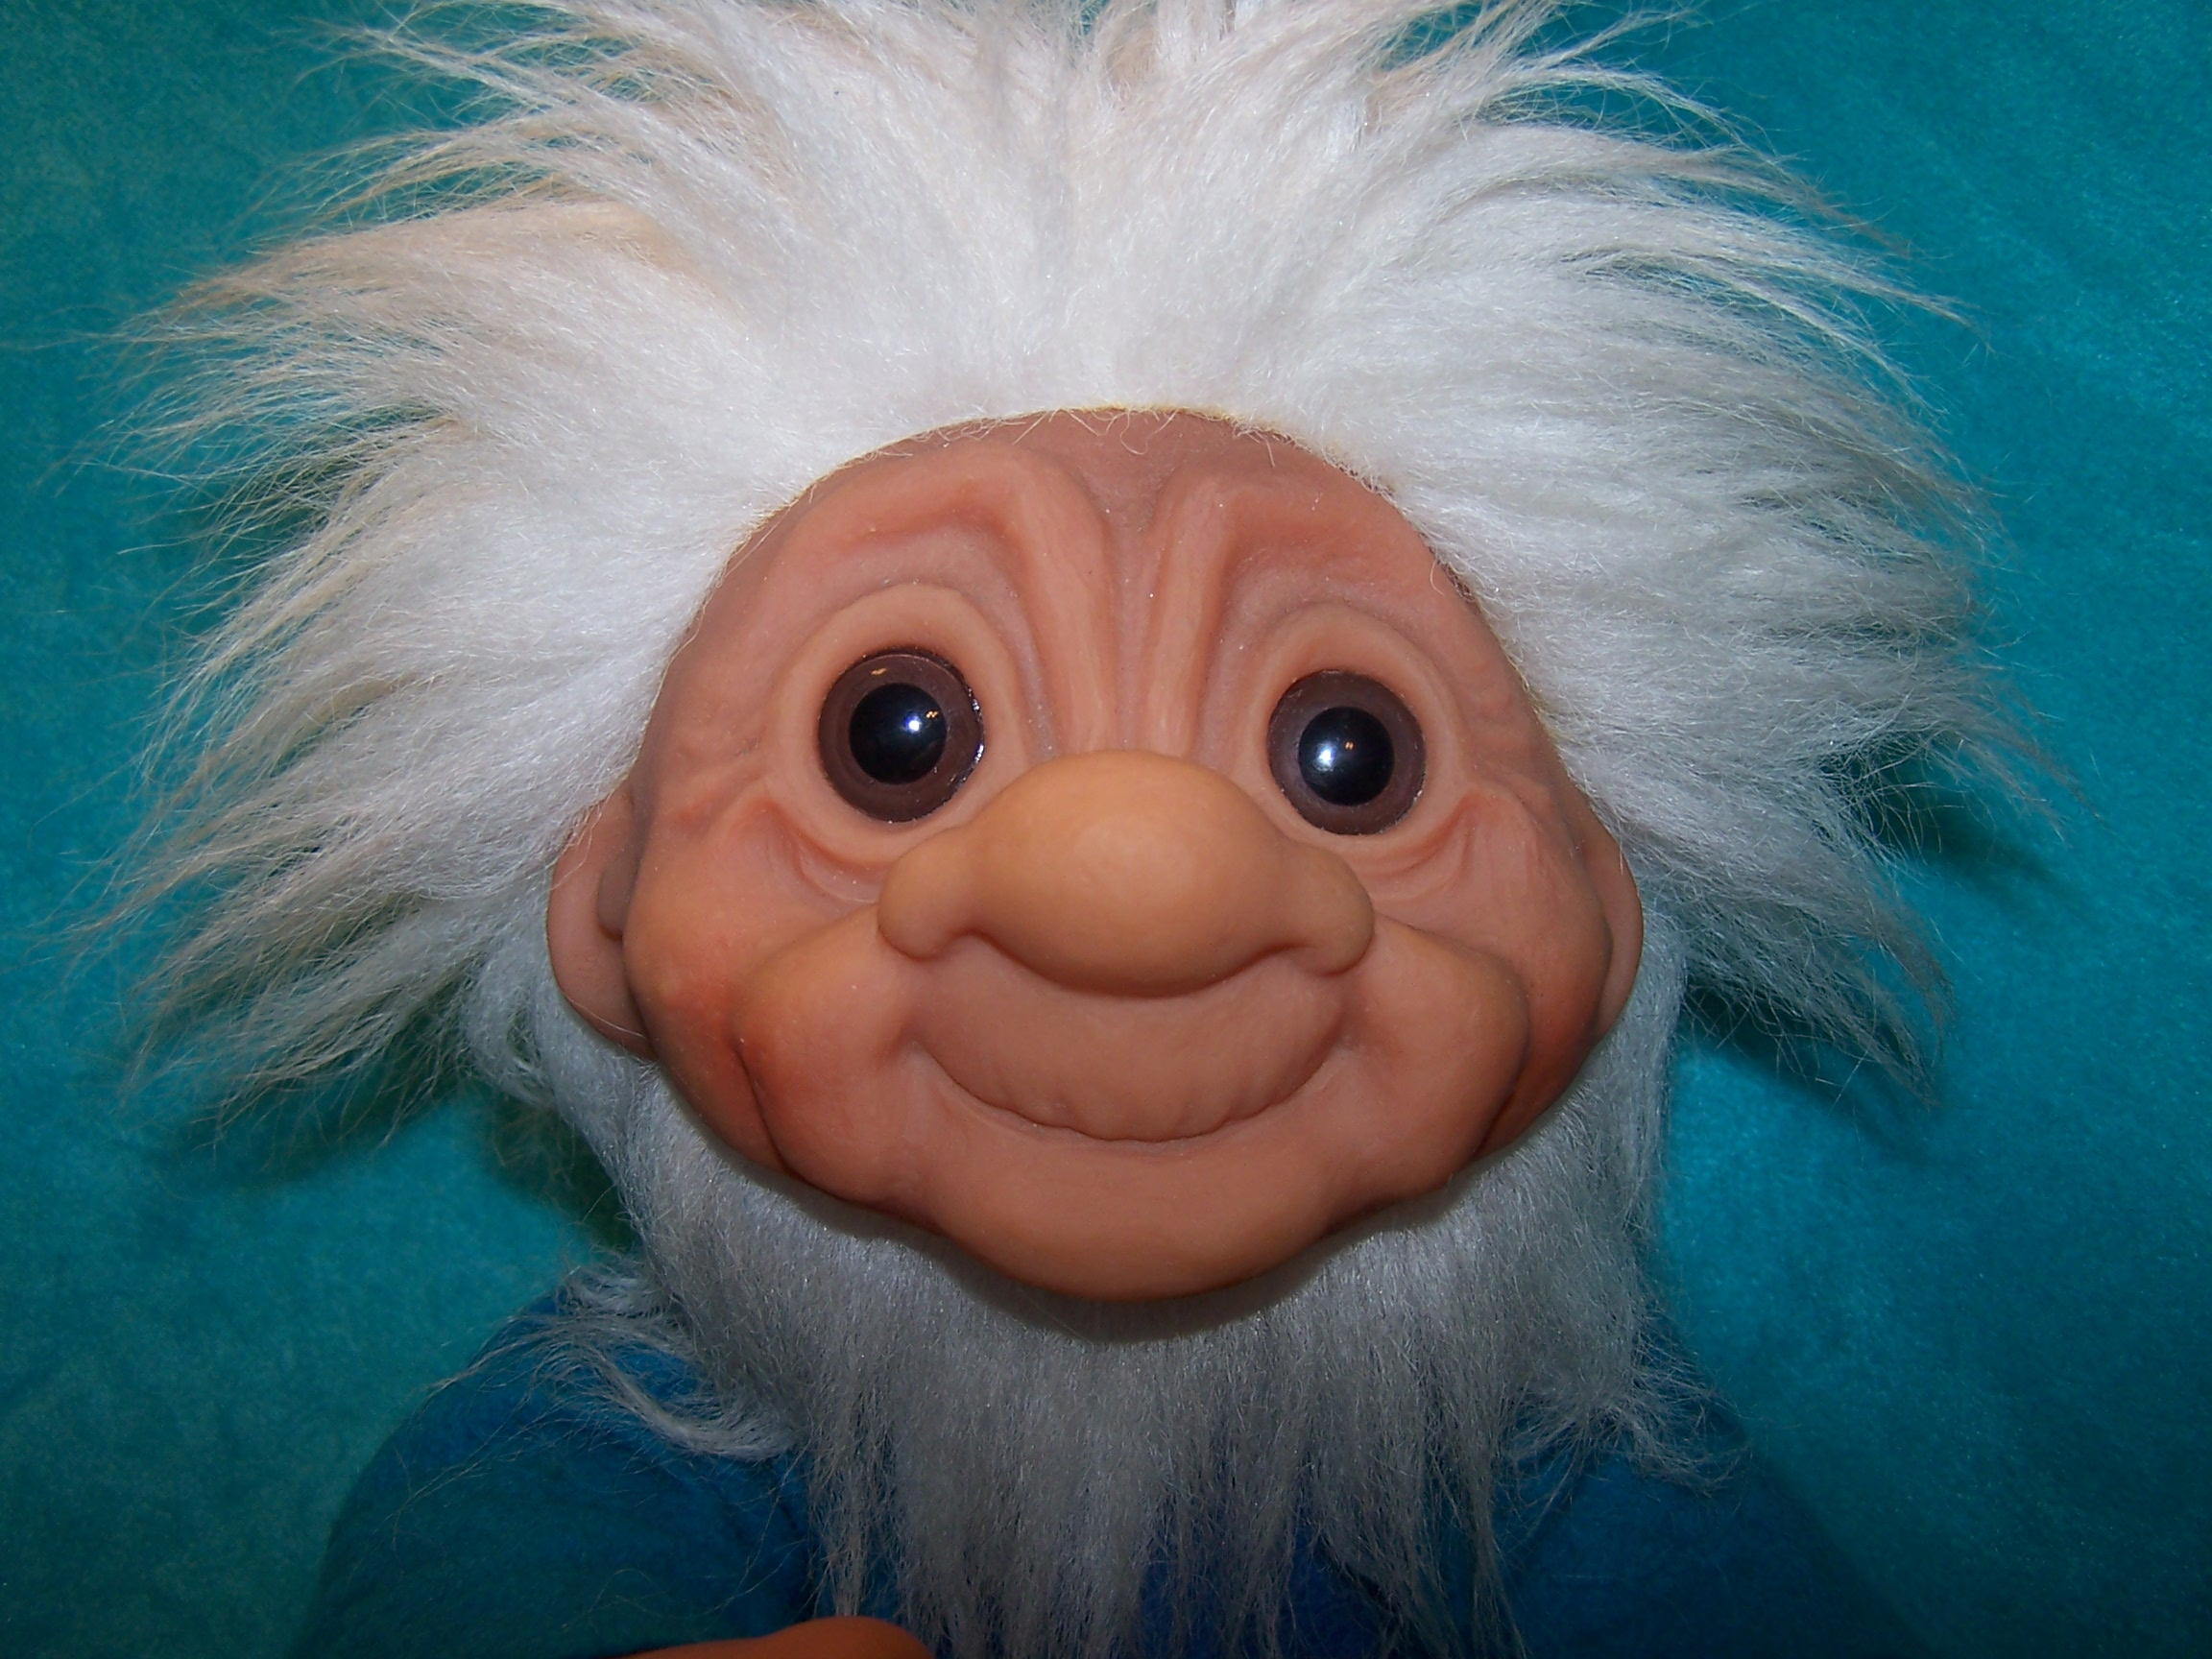 Image 1 of Norfin Troll Doll Grandpa, Thomas Dam, 1977 Denmark